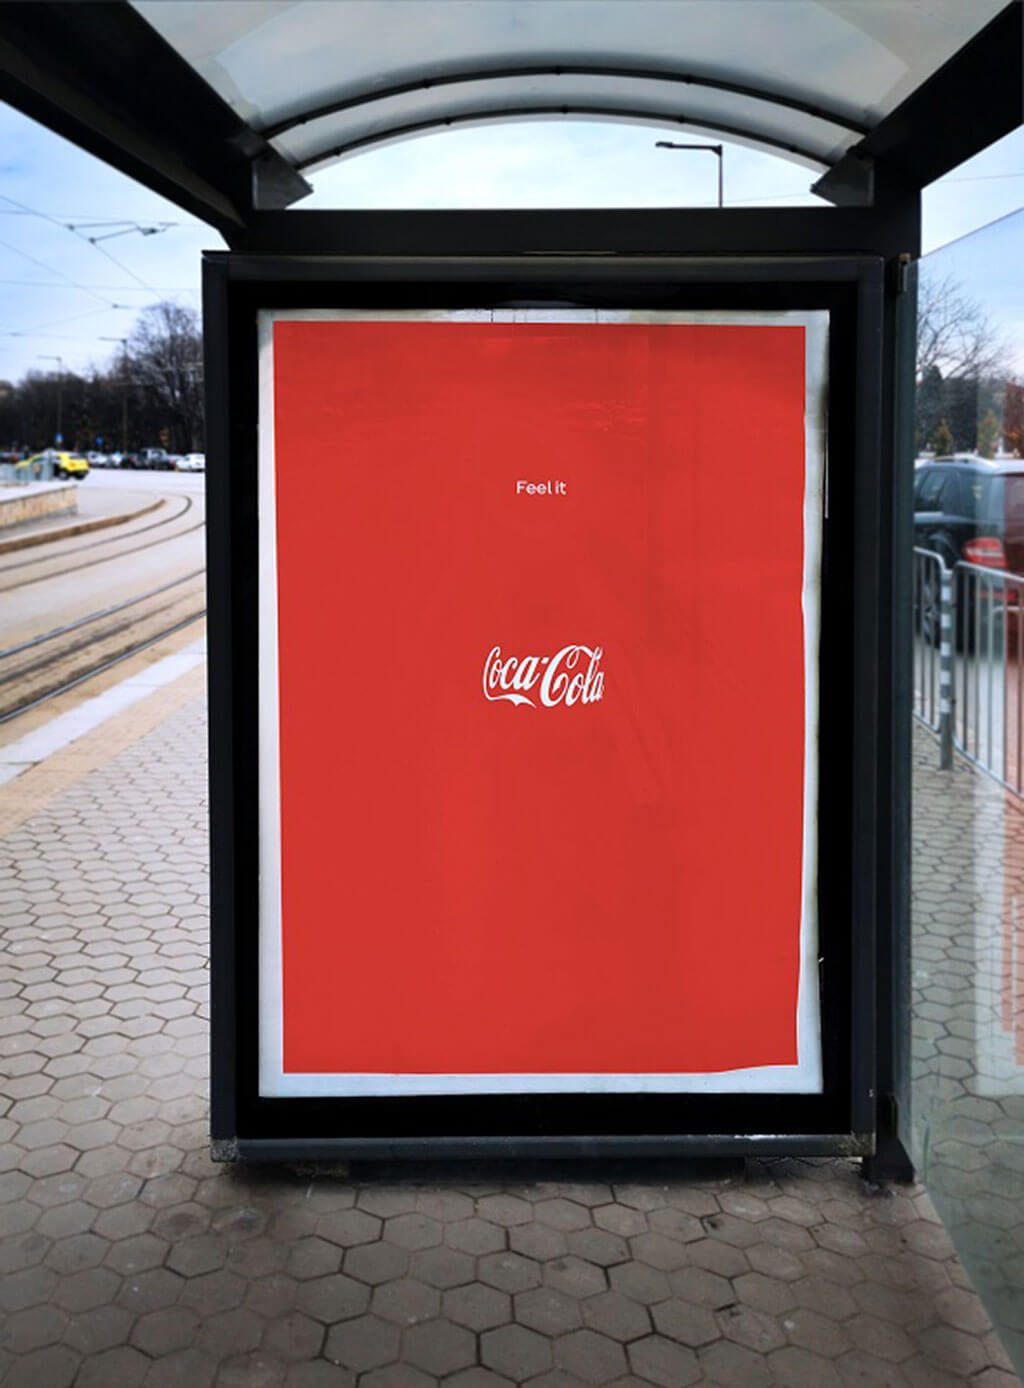 Coke uses optical illusion to get you to see its bottle